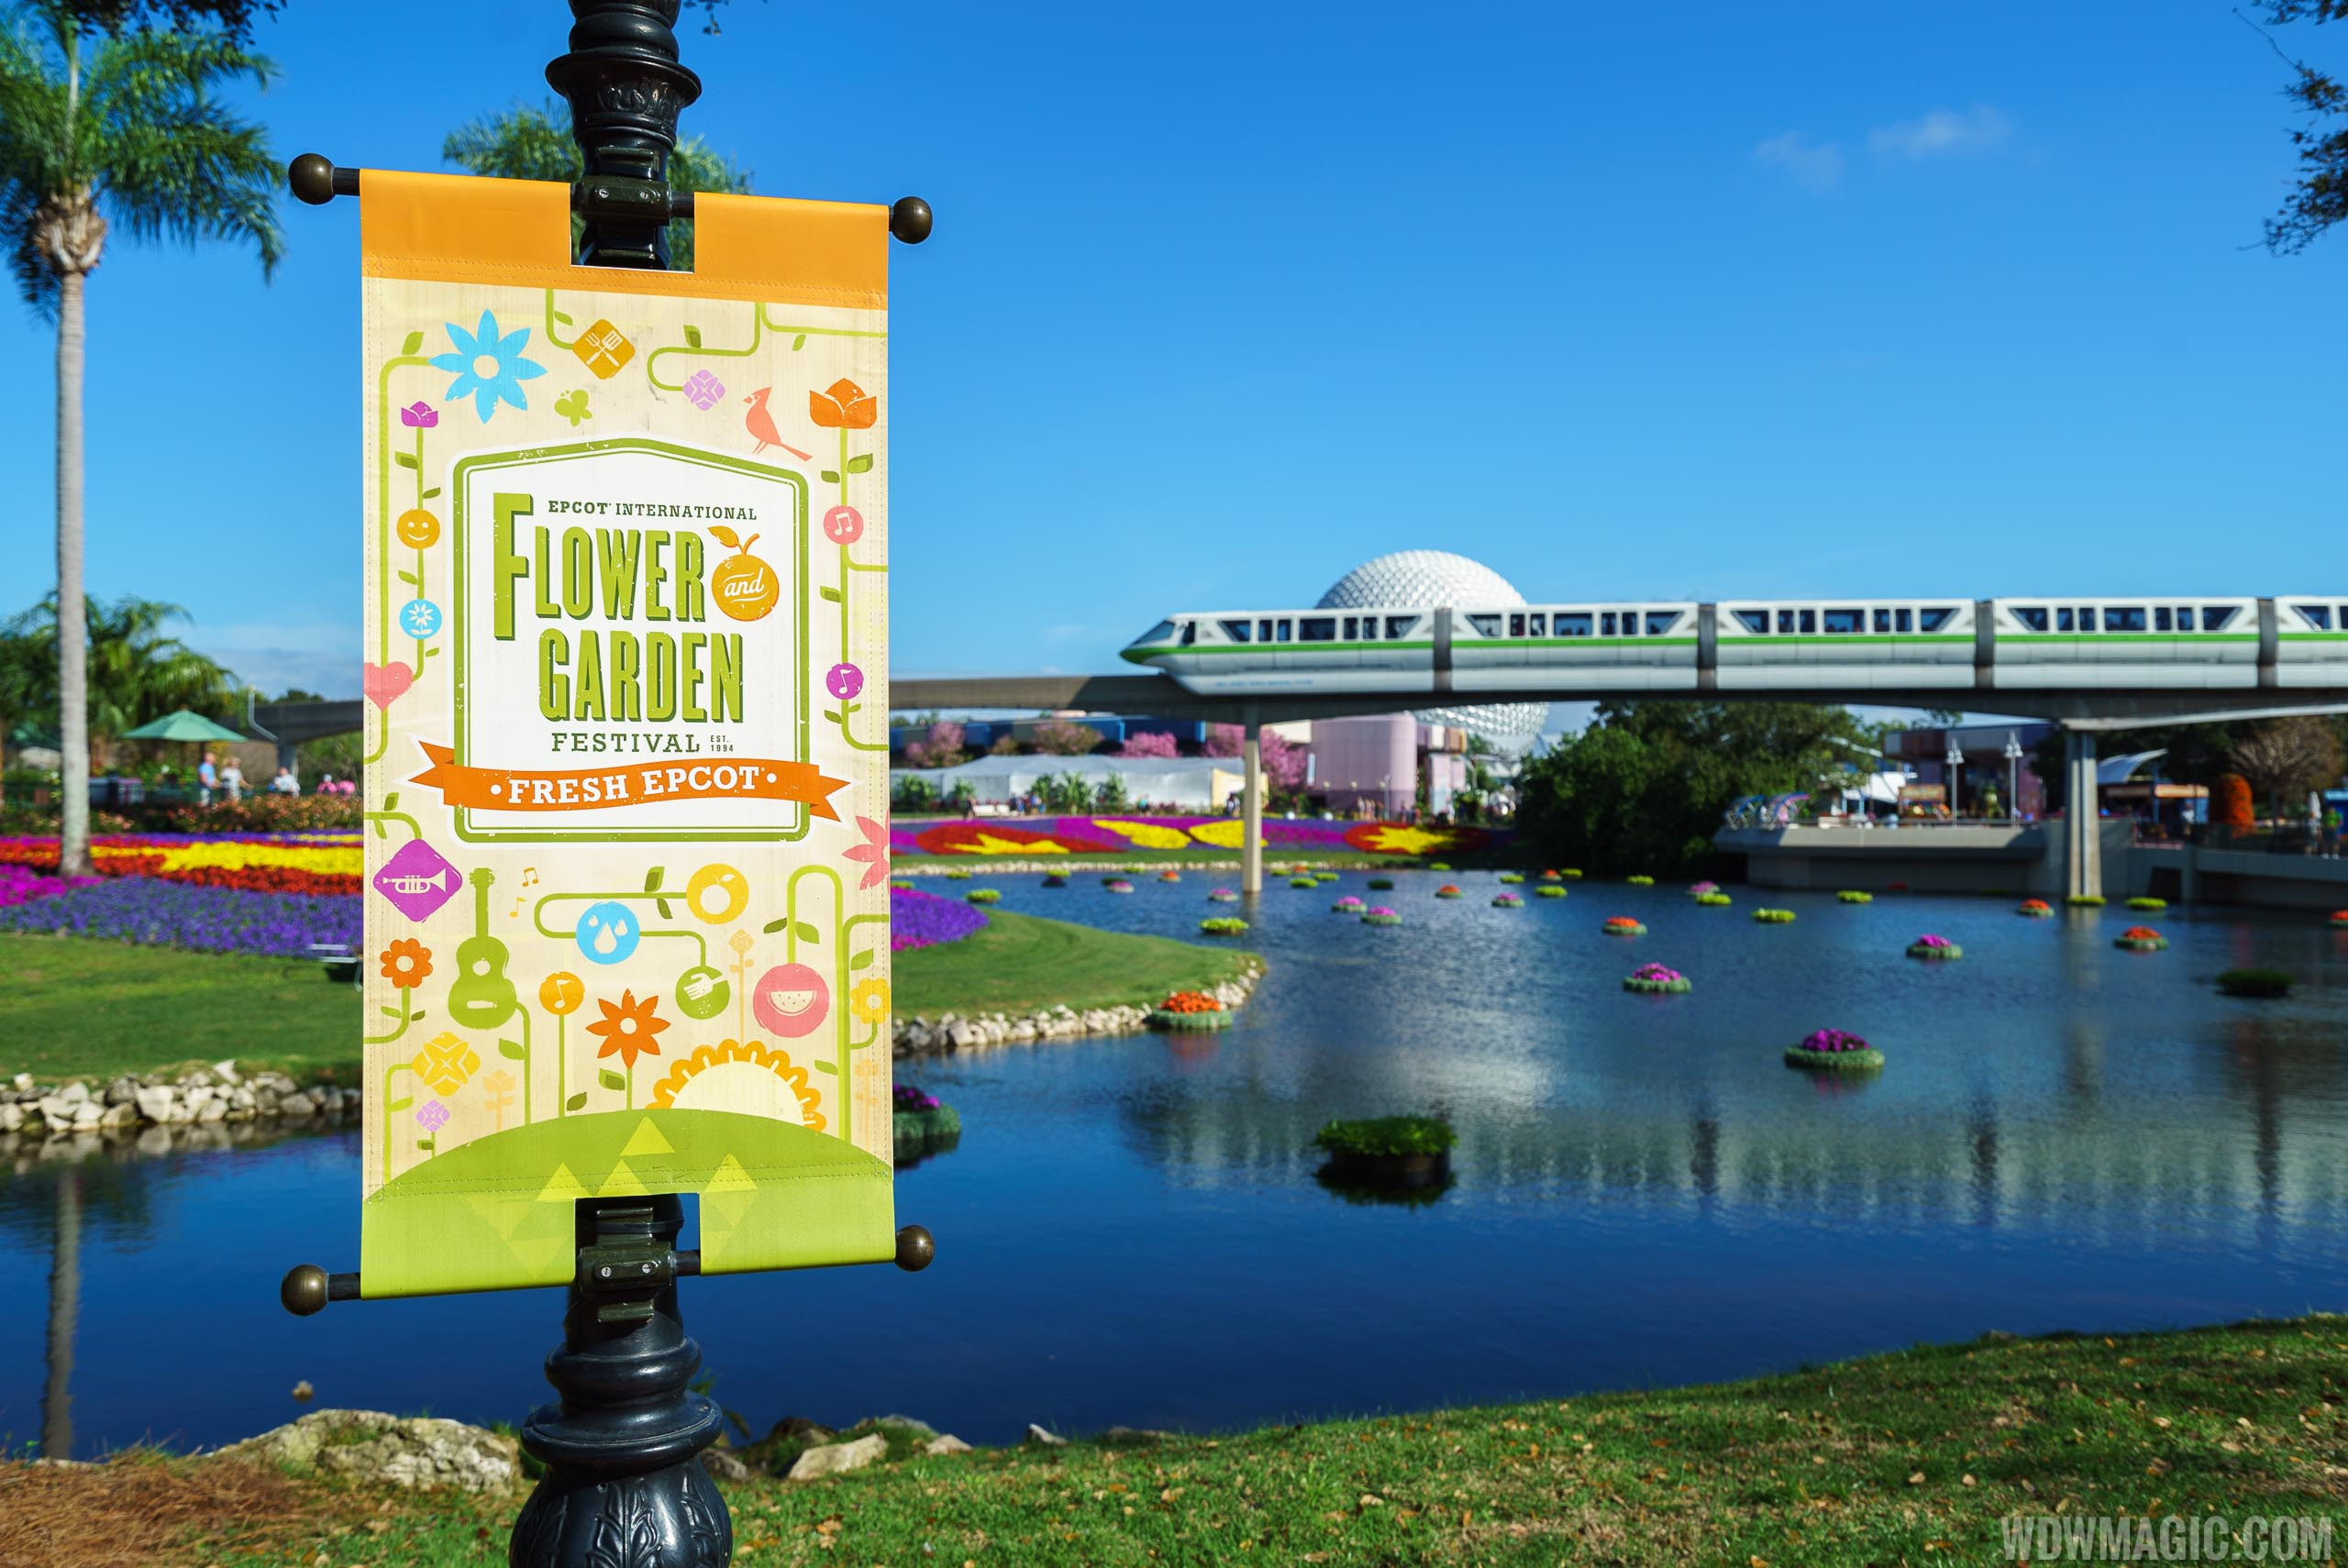 2017 Flower and Garden Festival - Signage